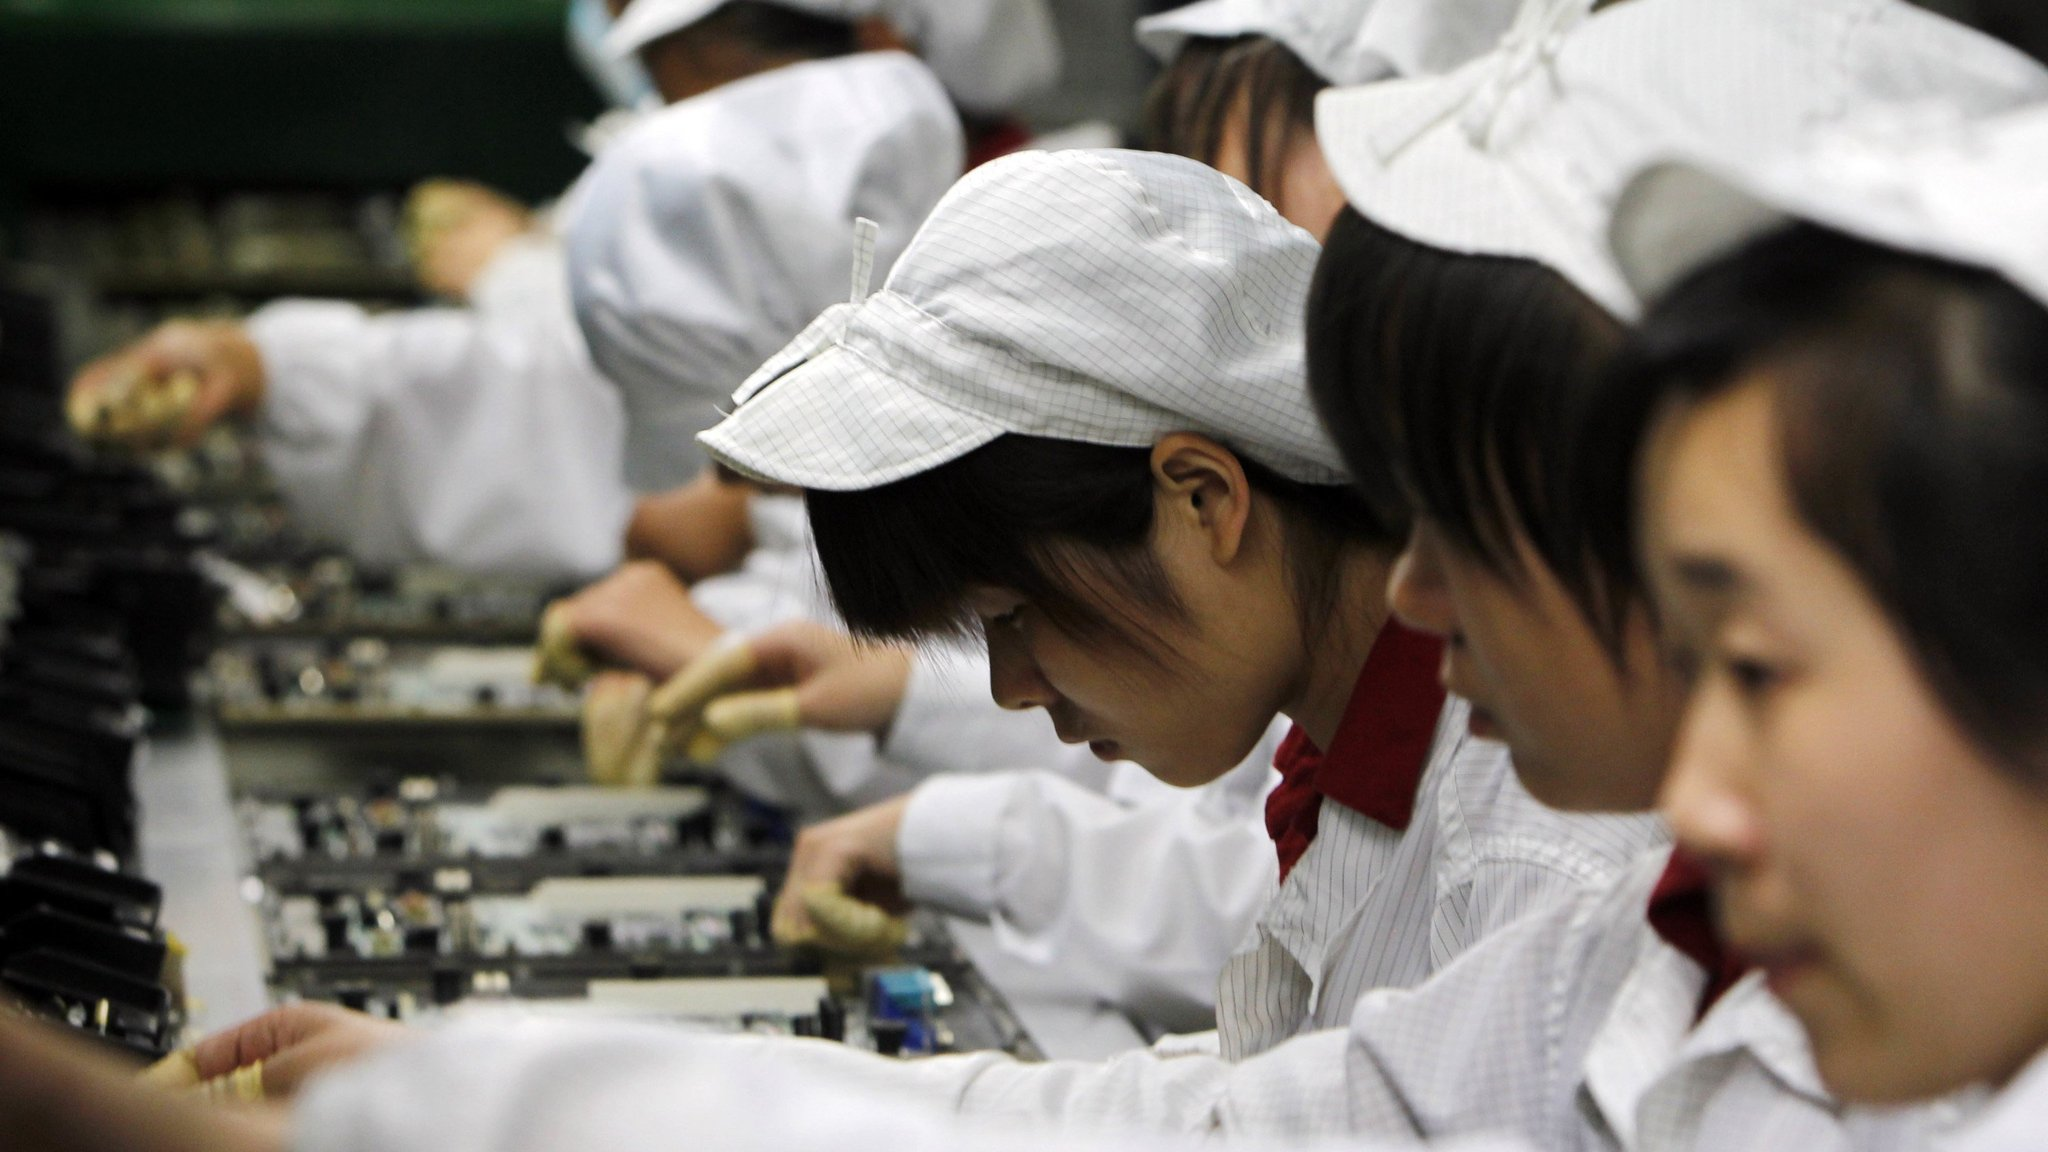 Illegal overtime in China factory highlights labour woes